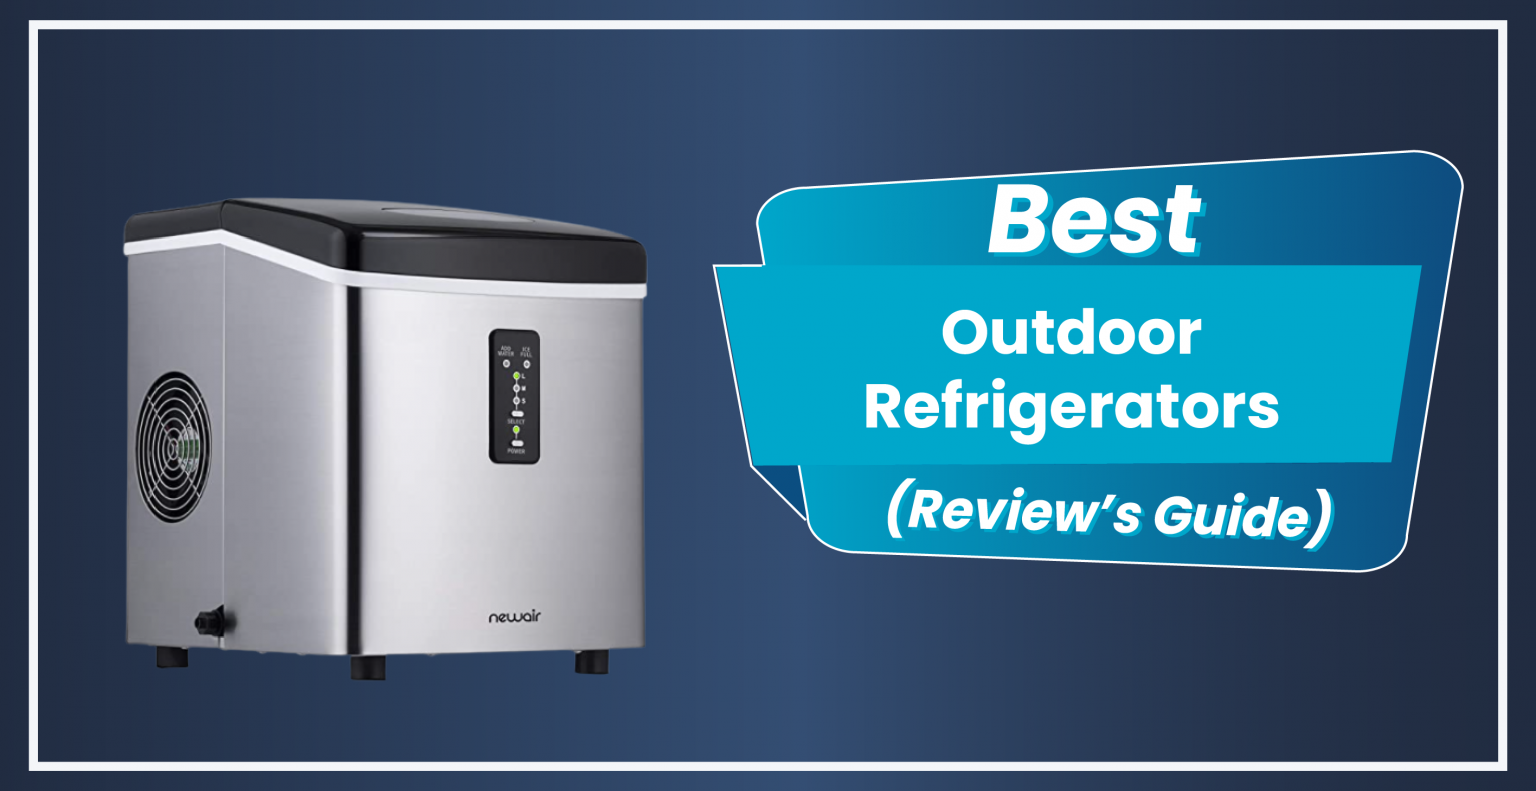 Best Outdoor Refrigerators